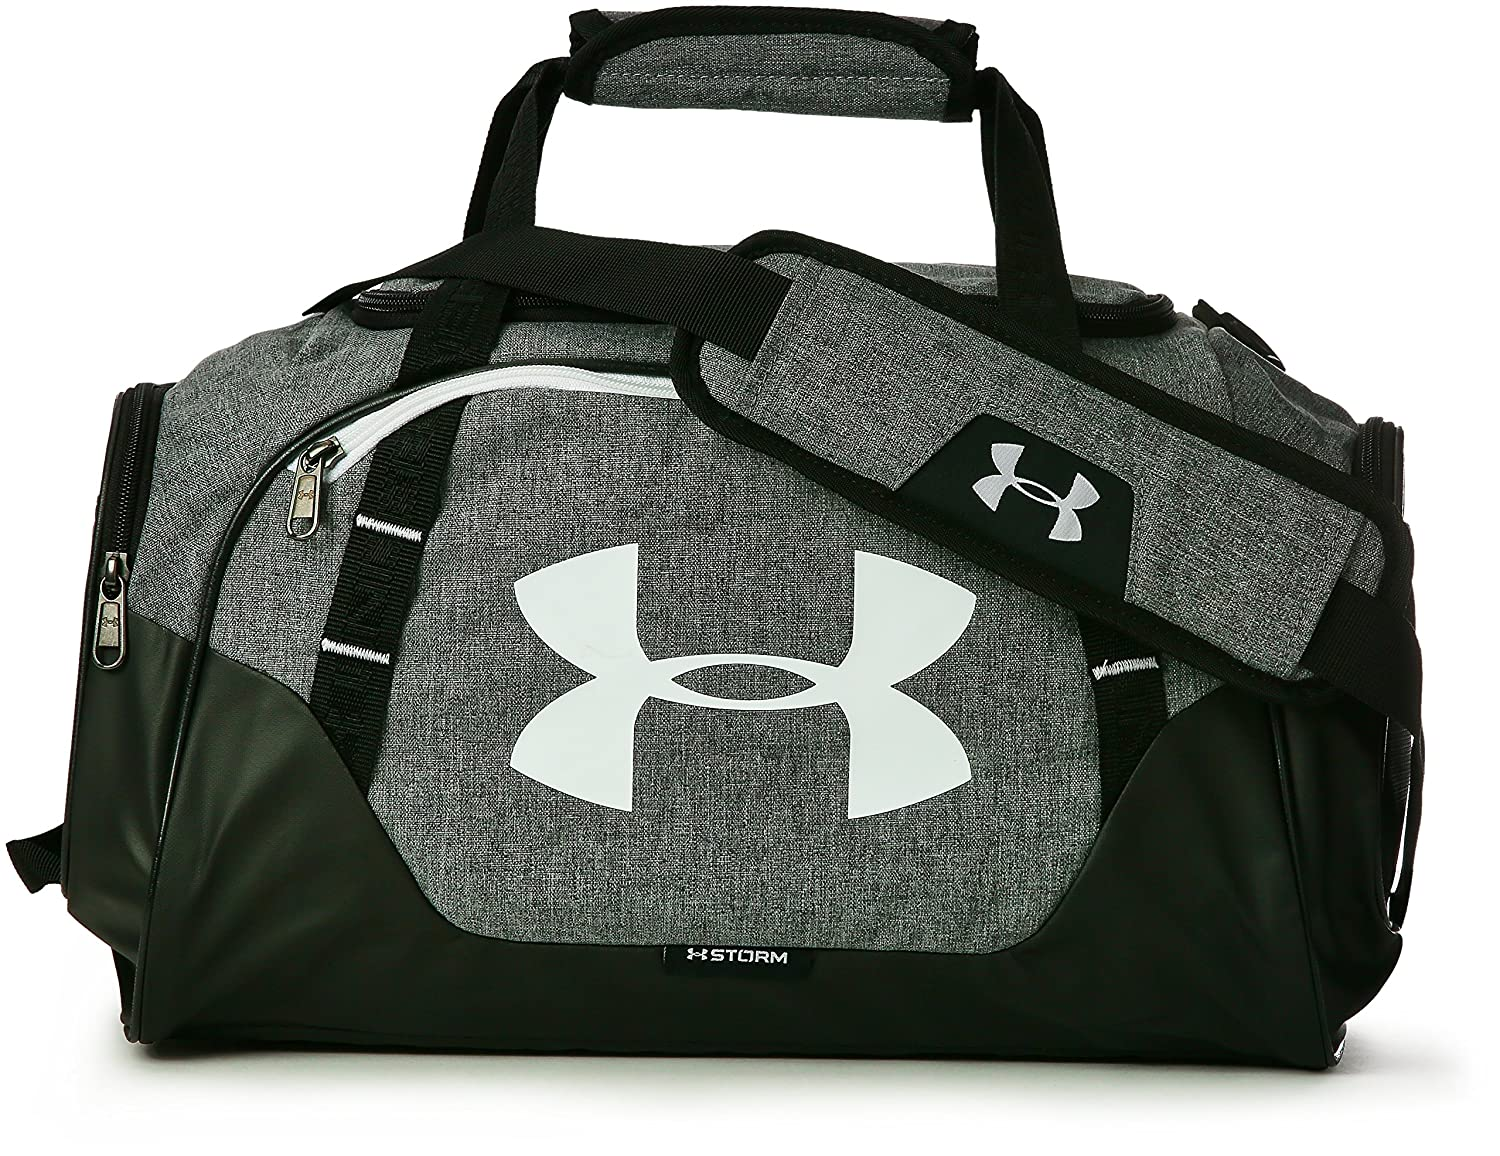 d6b4af689b9b Under Armour Unisex Adult Undeniable 3.0 Sport Duffel  Amazon.co.uk  Sports    Outdoors